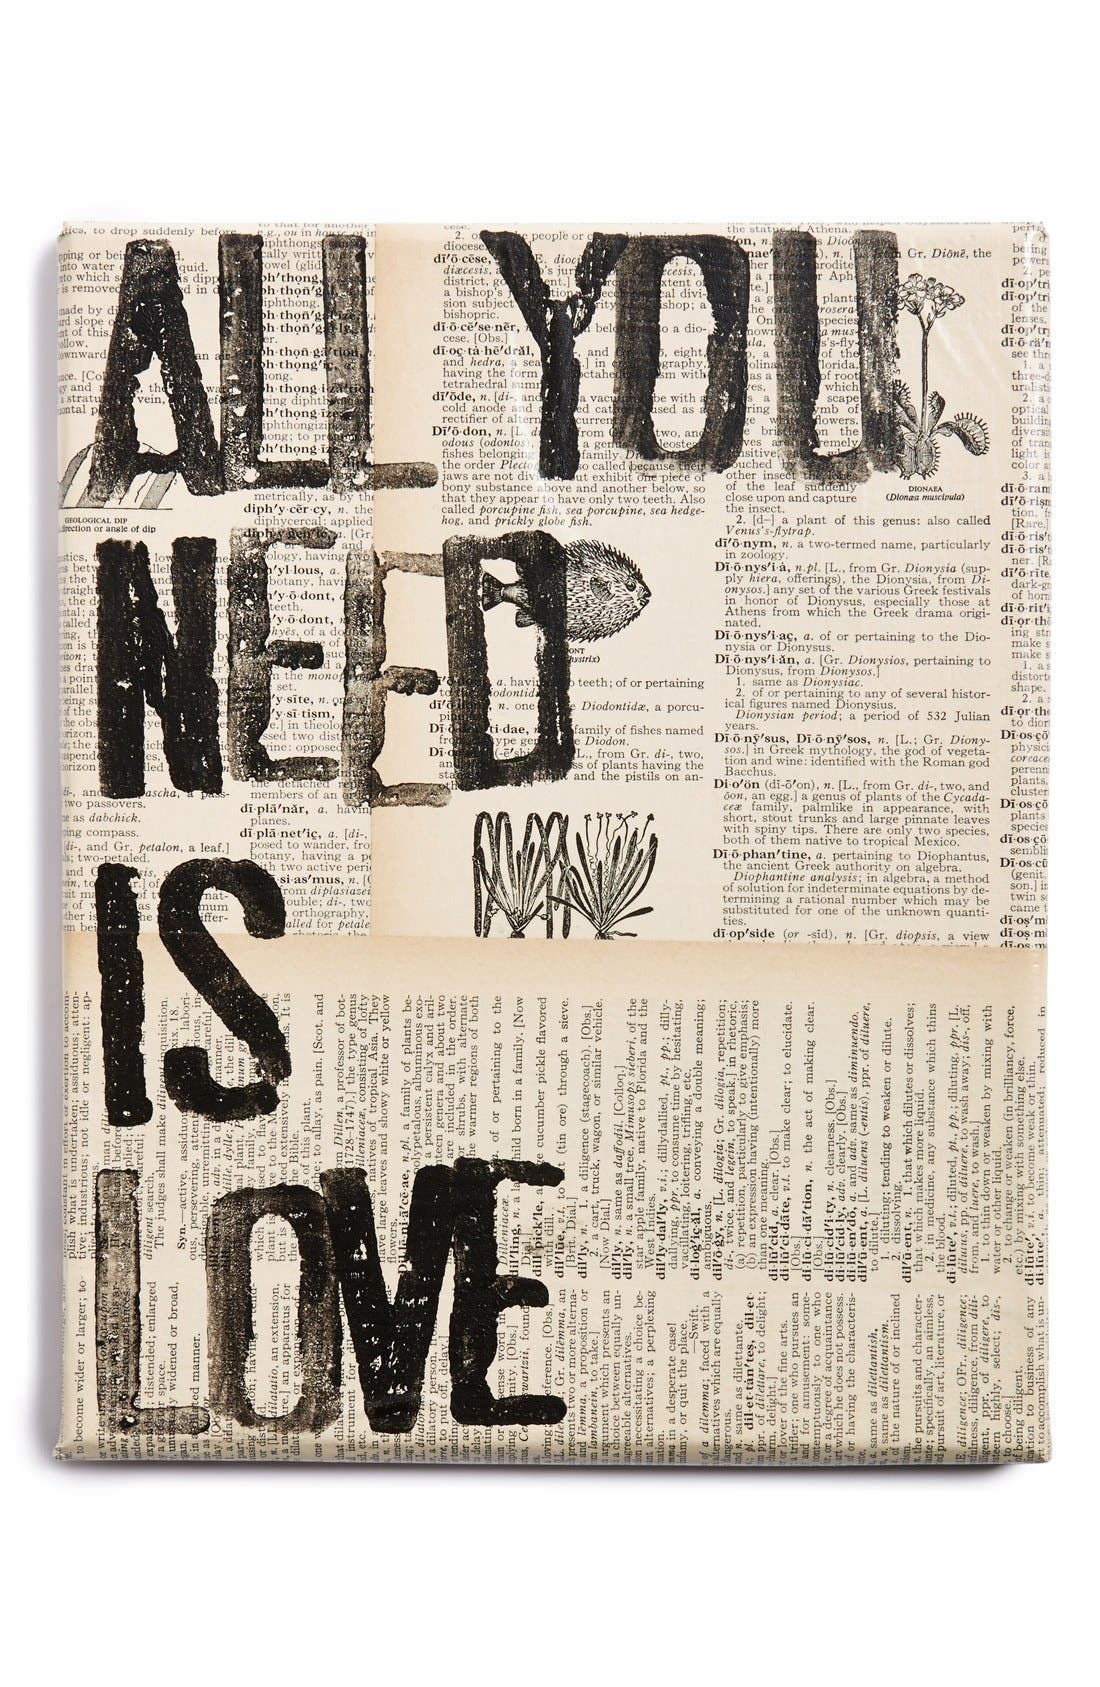 Alternate Image 1 Selected - Canton Box Co. 'All You Need Is Love' Wall Art